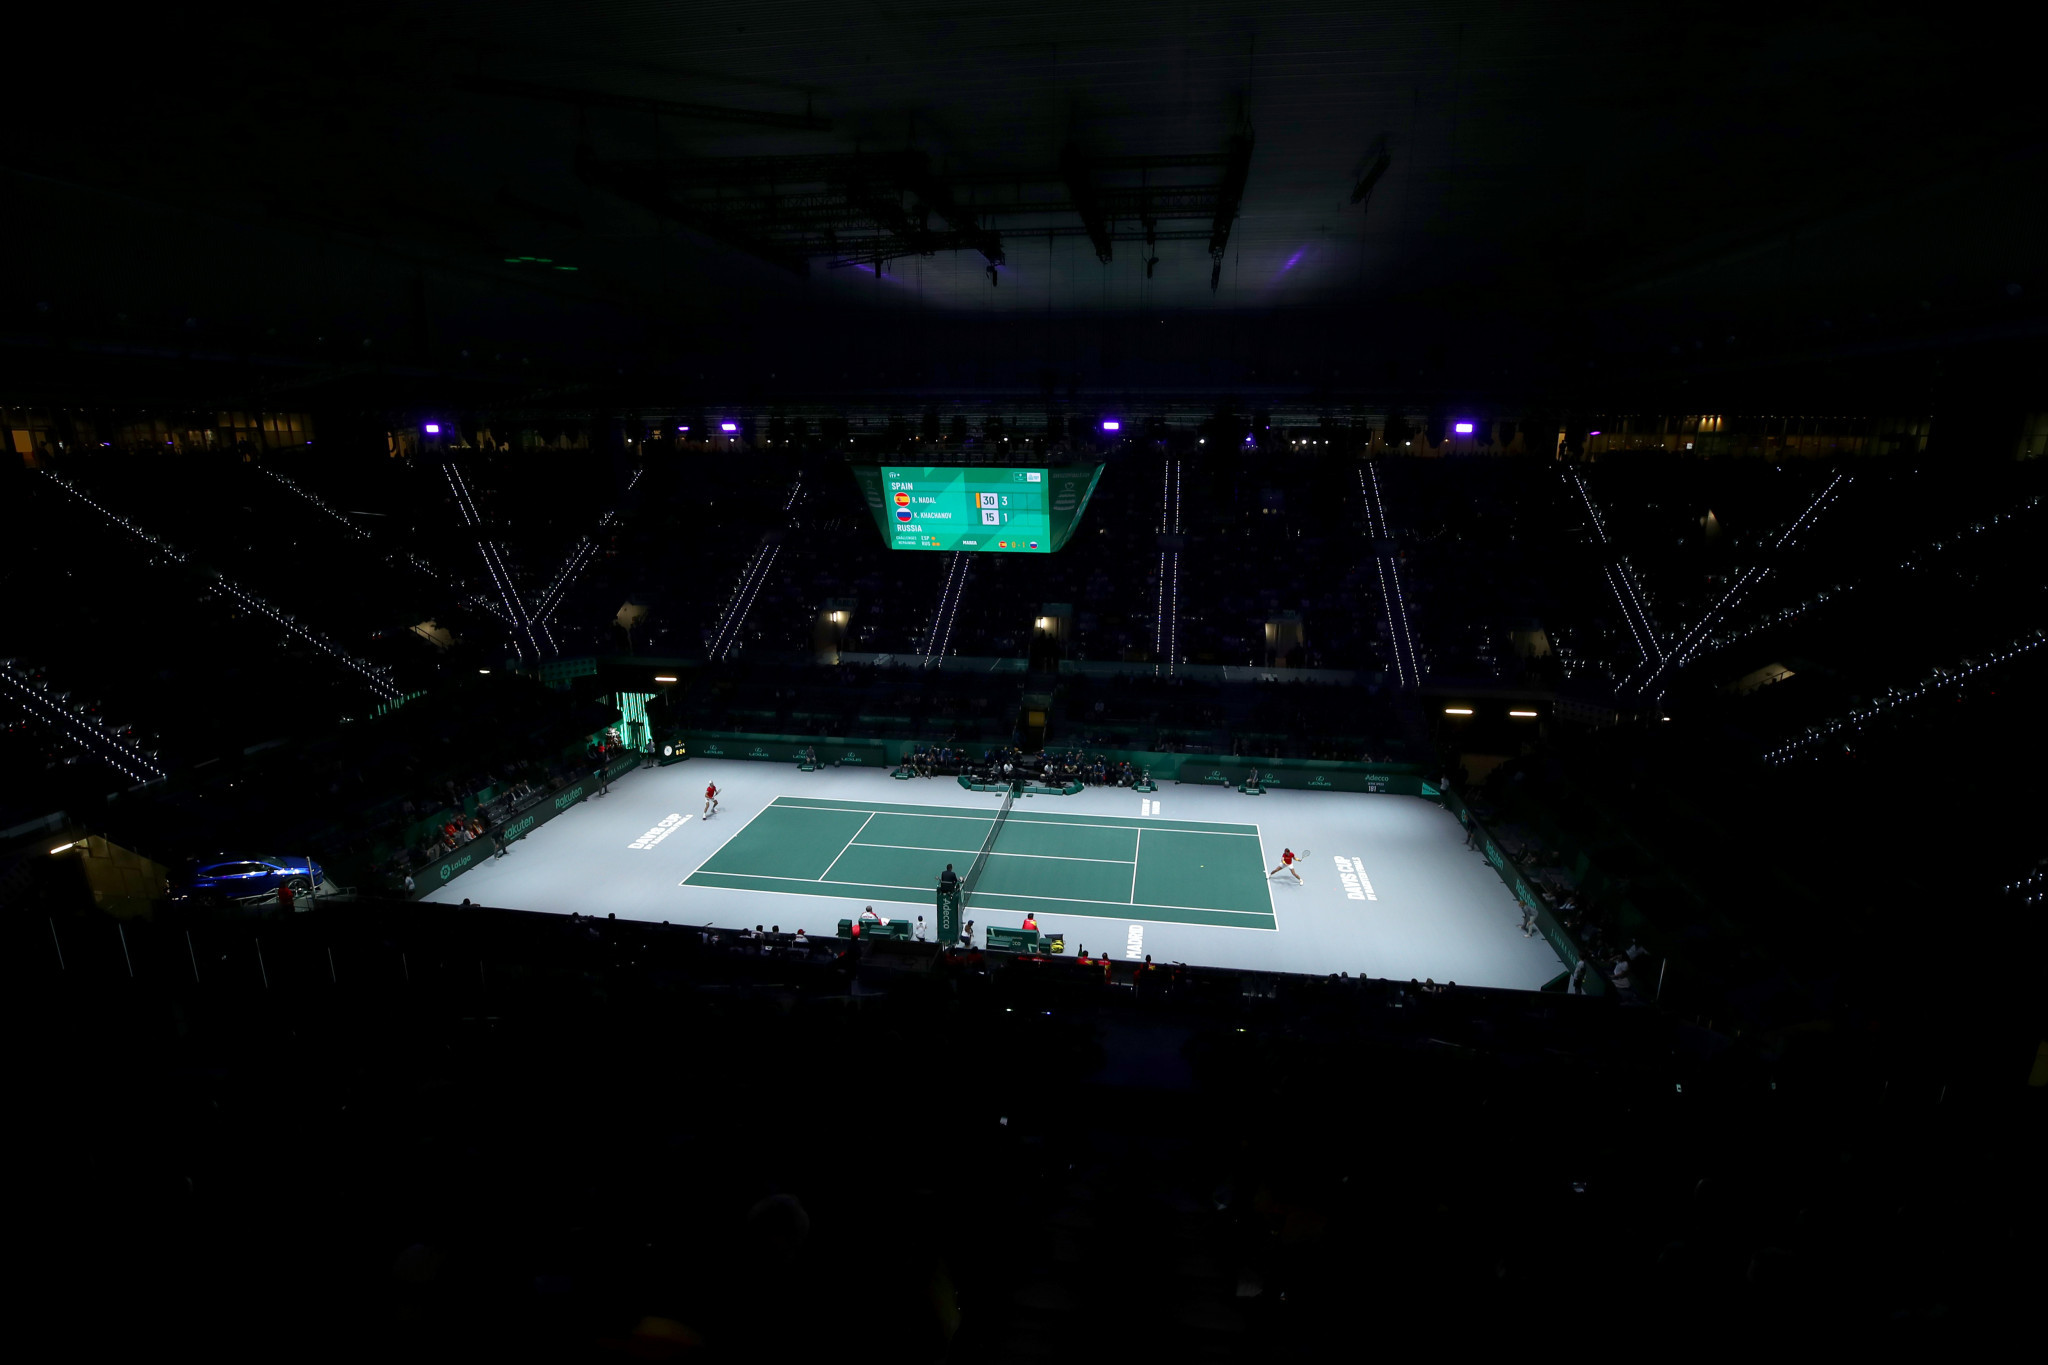 International Tennis Federation ban live data and scoring at $15,000 events